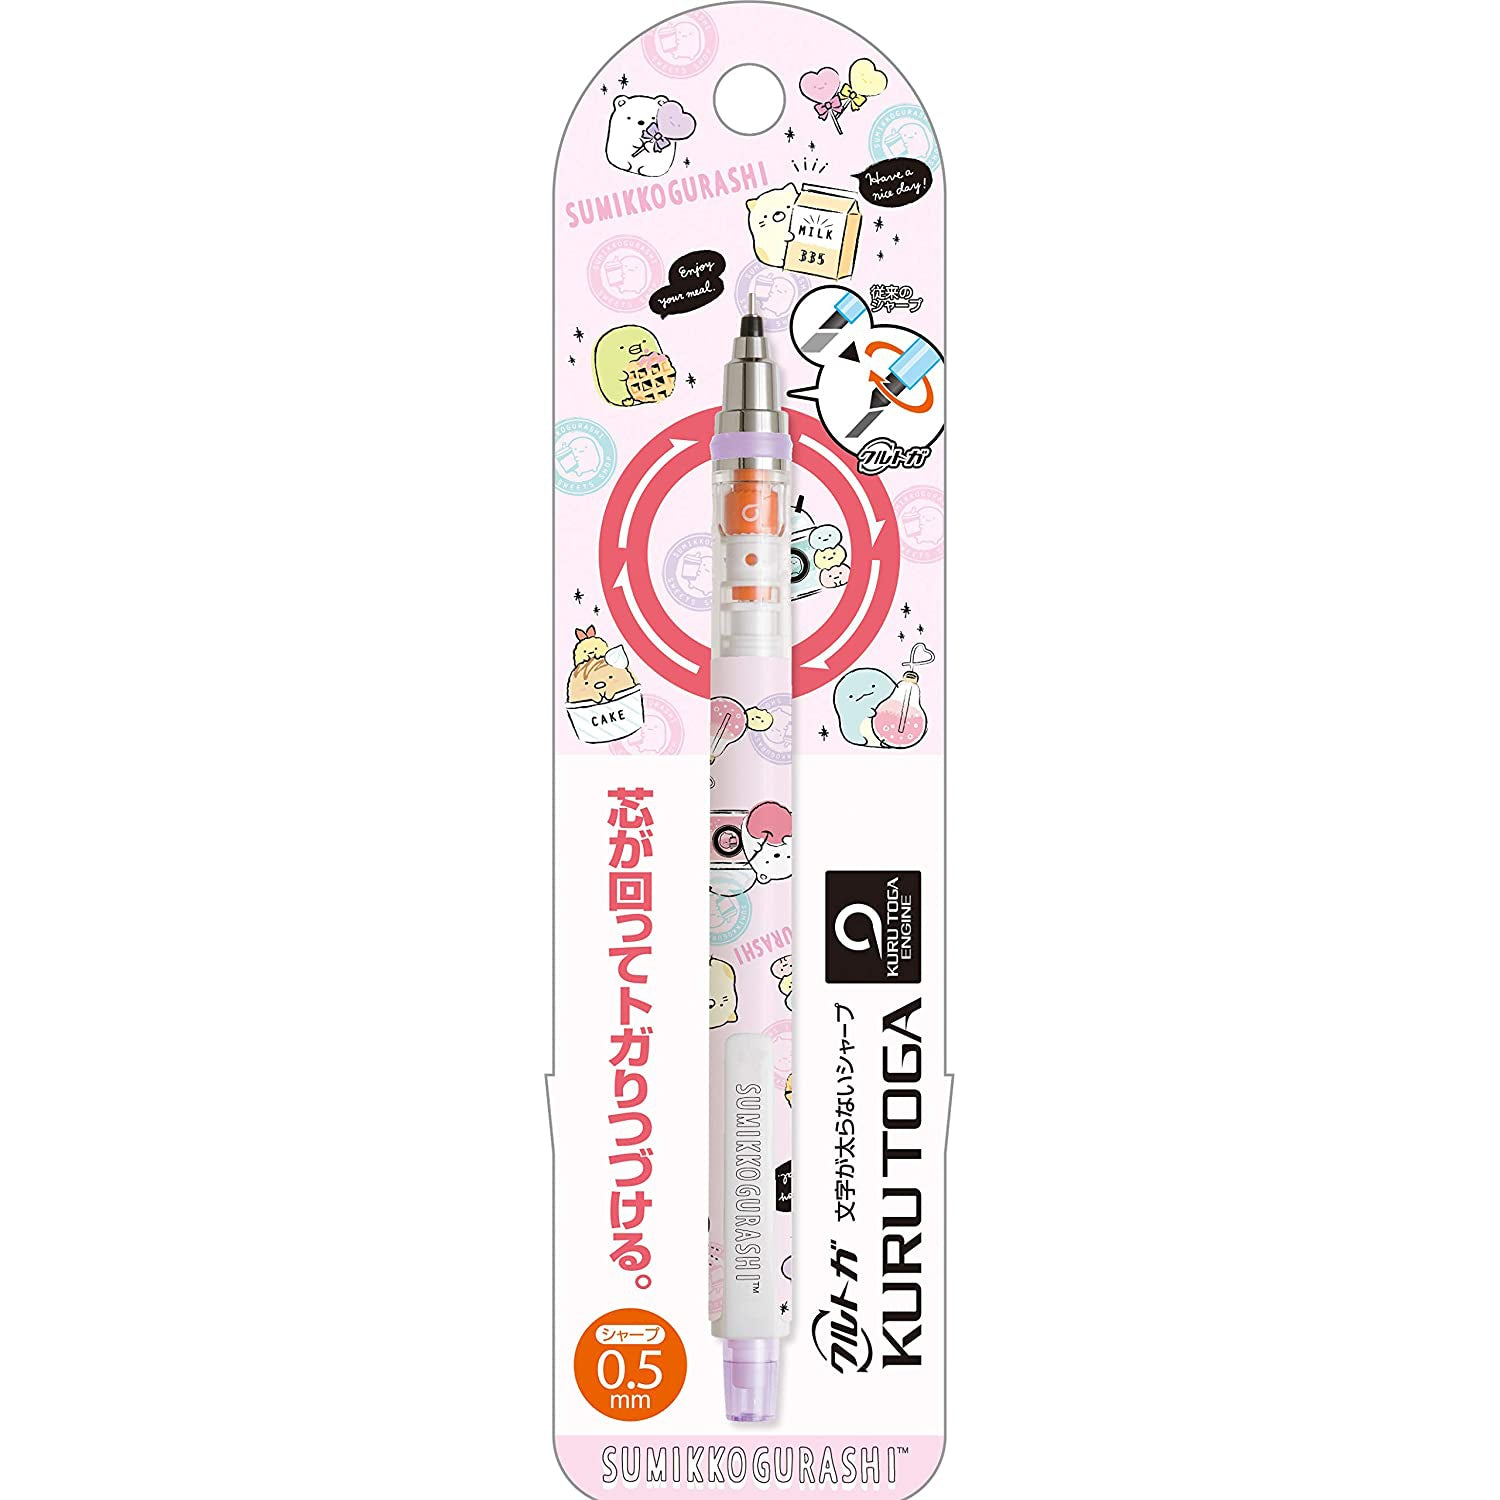 PN39701 Sumikko Gurashi Kuru Toga Mechanical Pencil 0.5mm